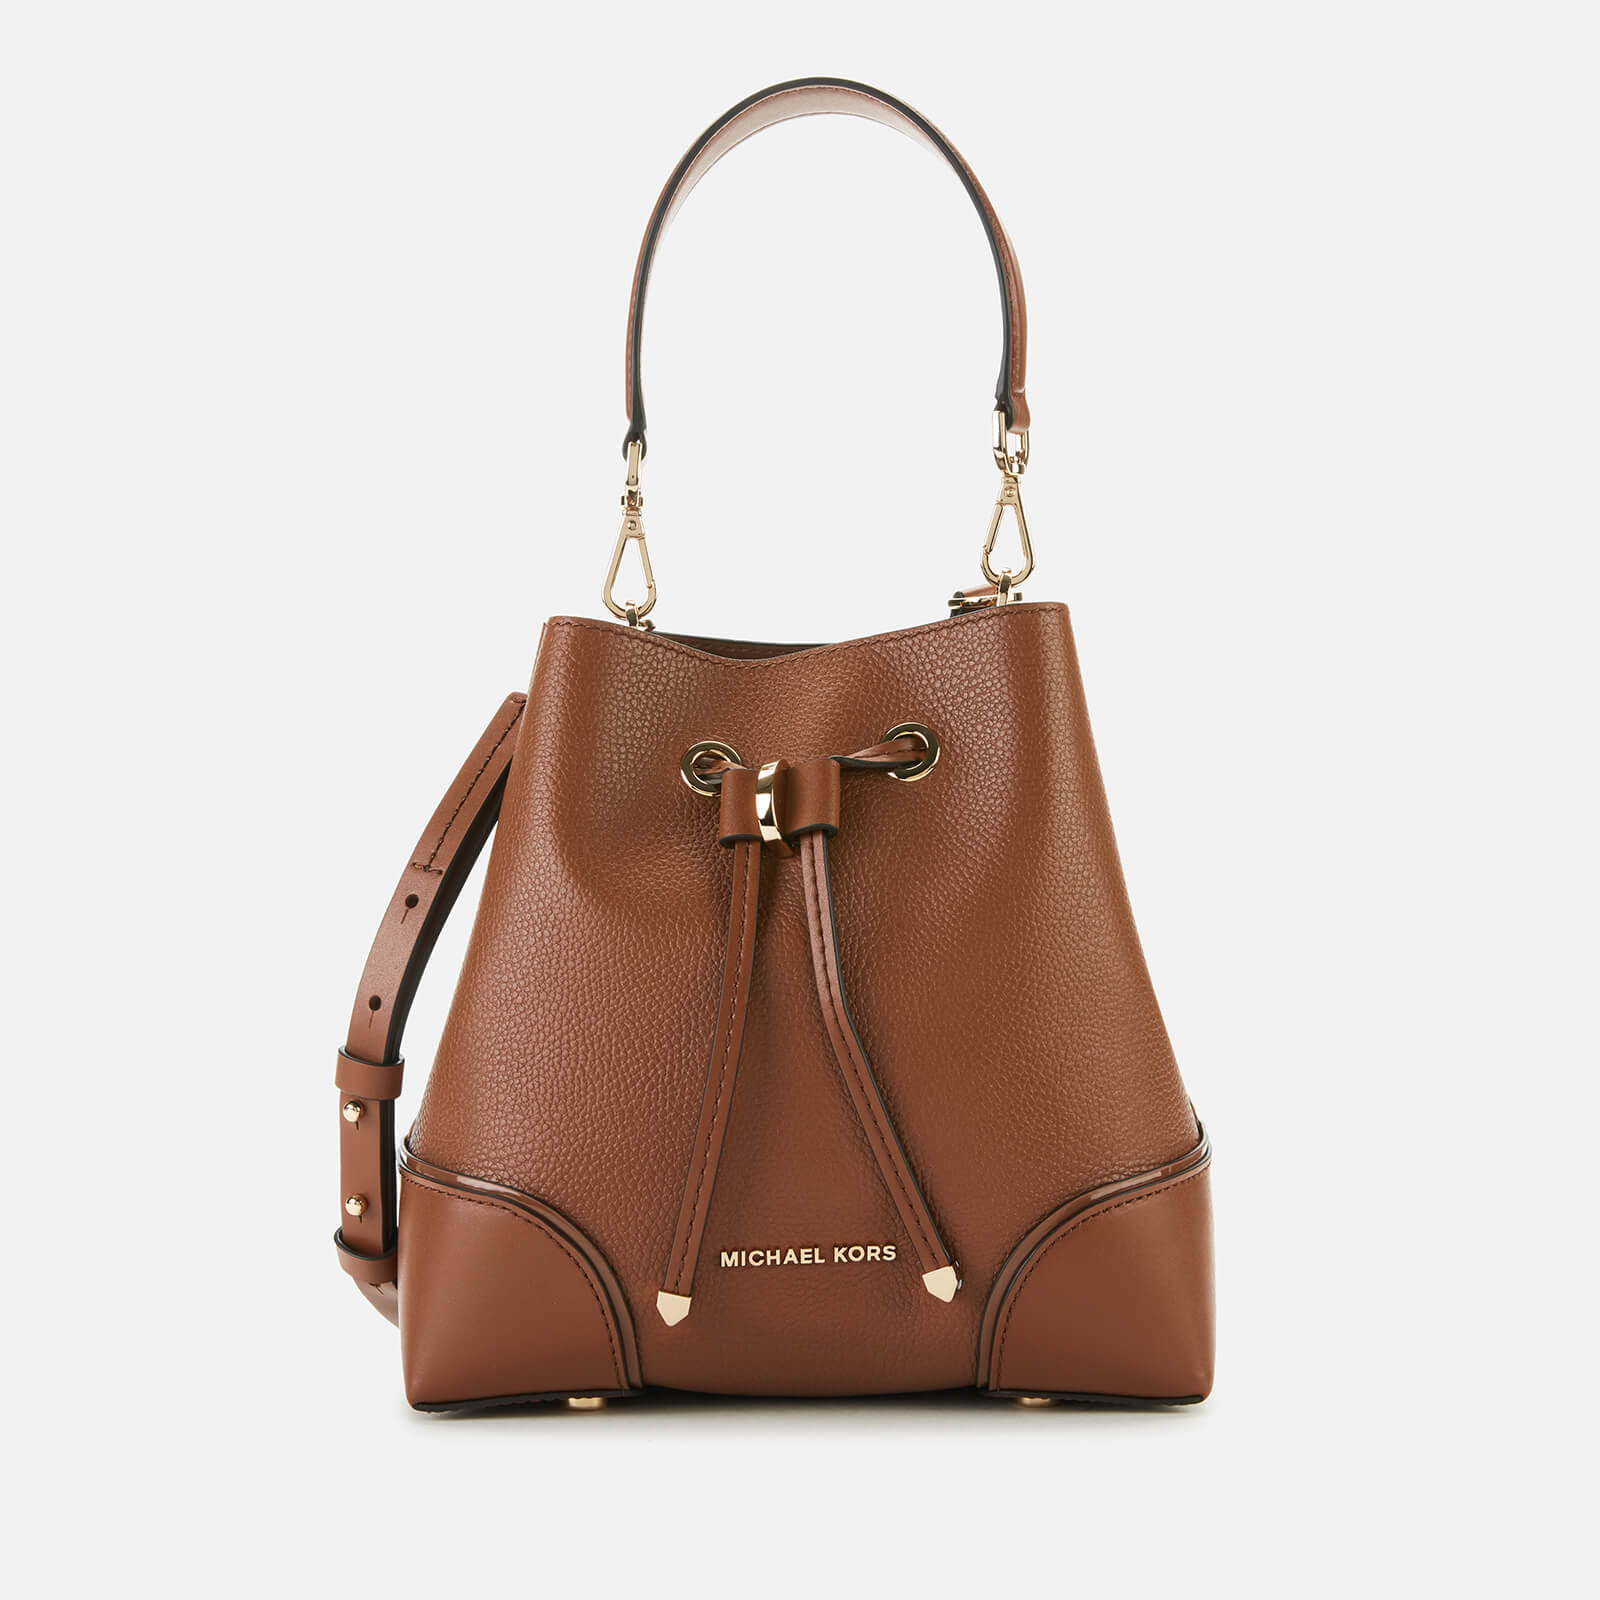 MICHAEL MICHAEL KORS Women's Mercer Gallery Small Convertible Bucket Bag - Luggage